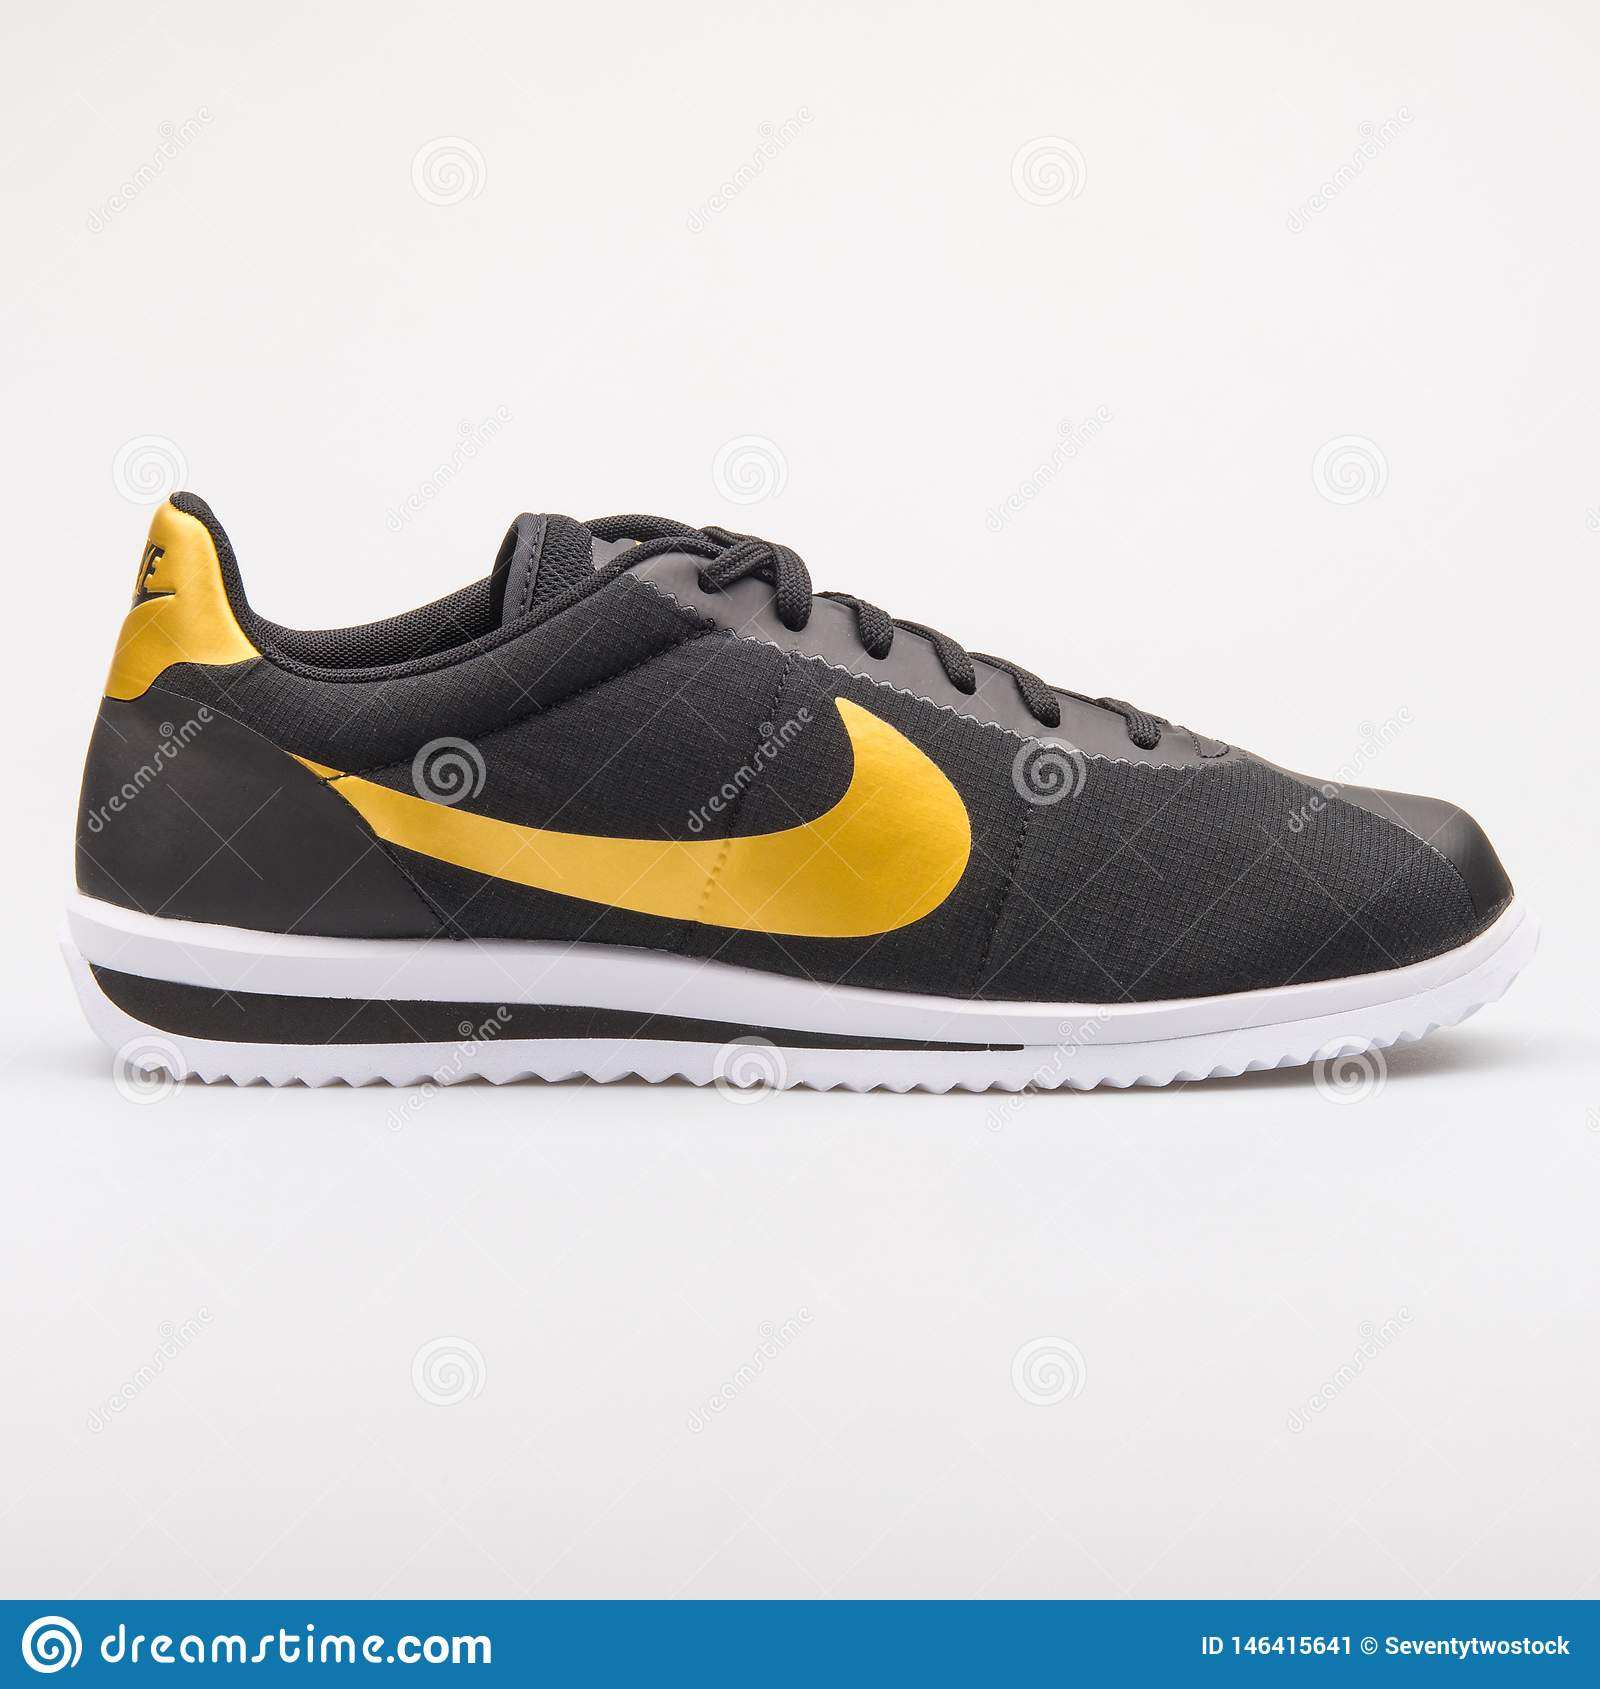 new product a99dc f6b9c Nike Cortez Ultra QS Black And Gold Sneaker Editorial Photo ...